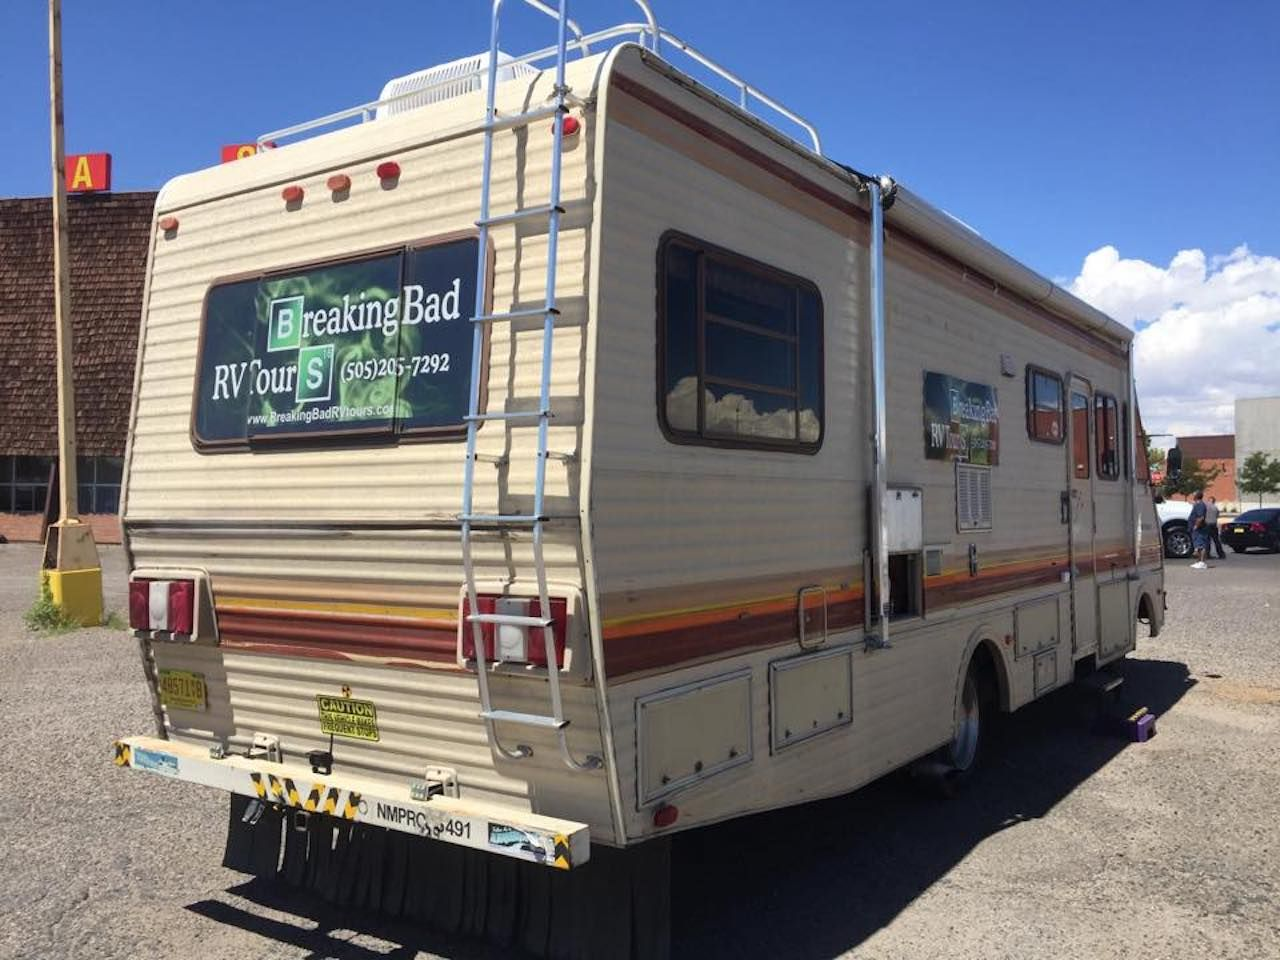 Breaking Bad RV Tours